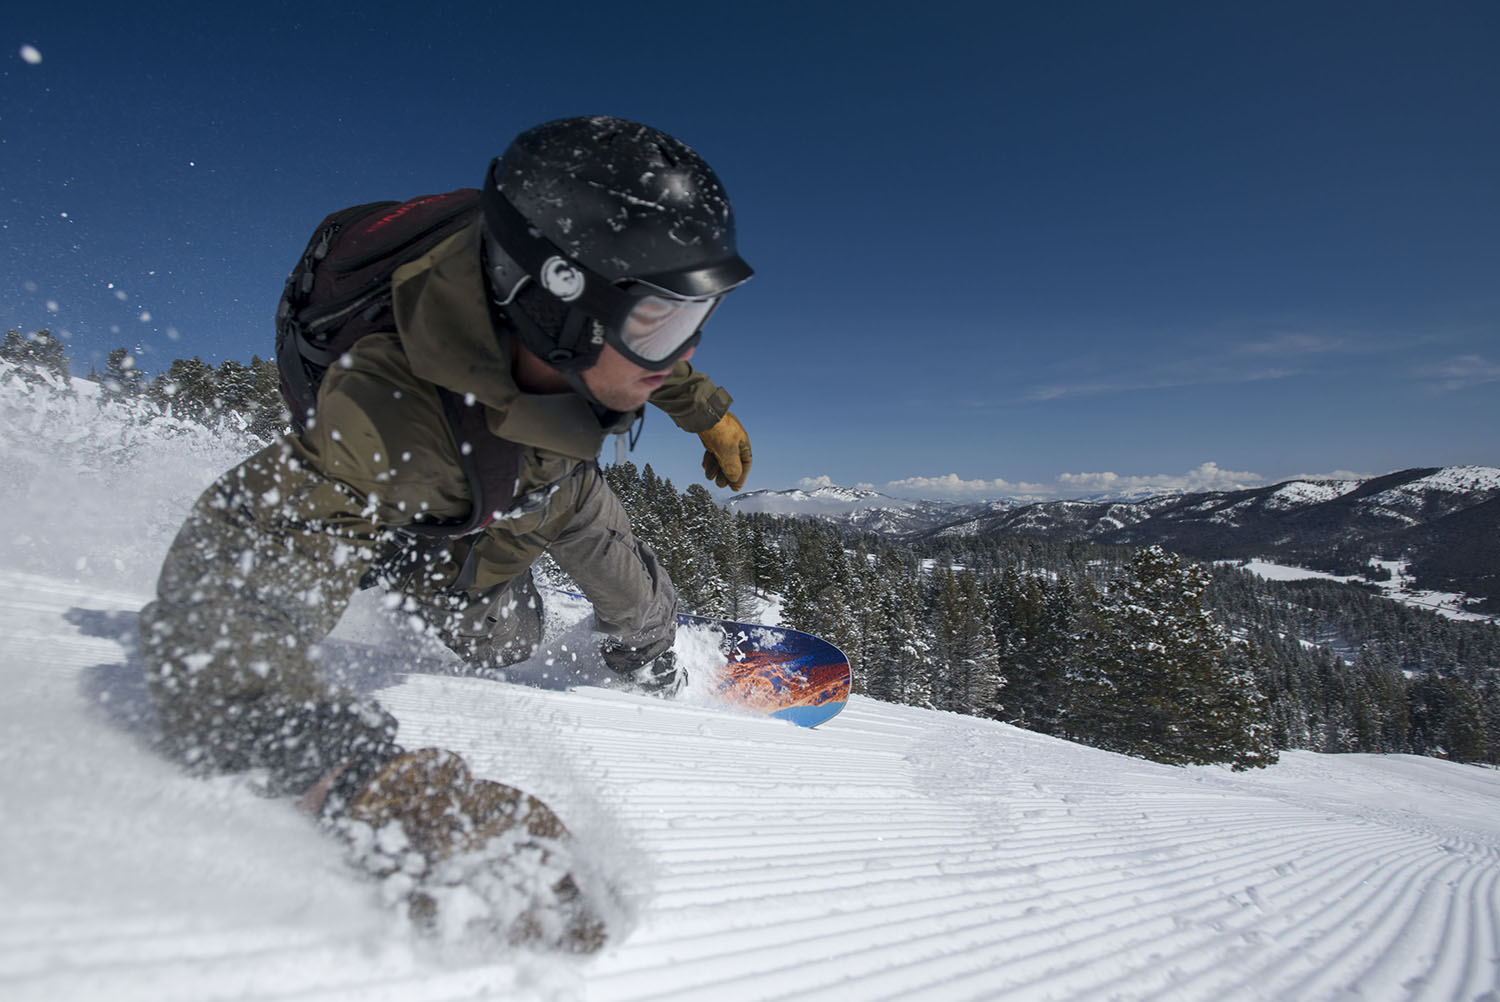 If the corduroy fits, shred it.  Kyle Cremer stitches the fabric at Bridger Bowl.